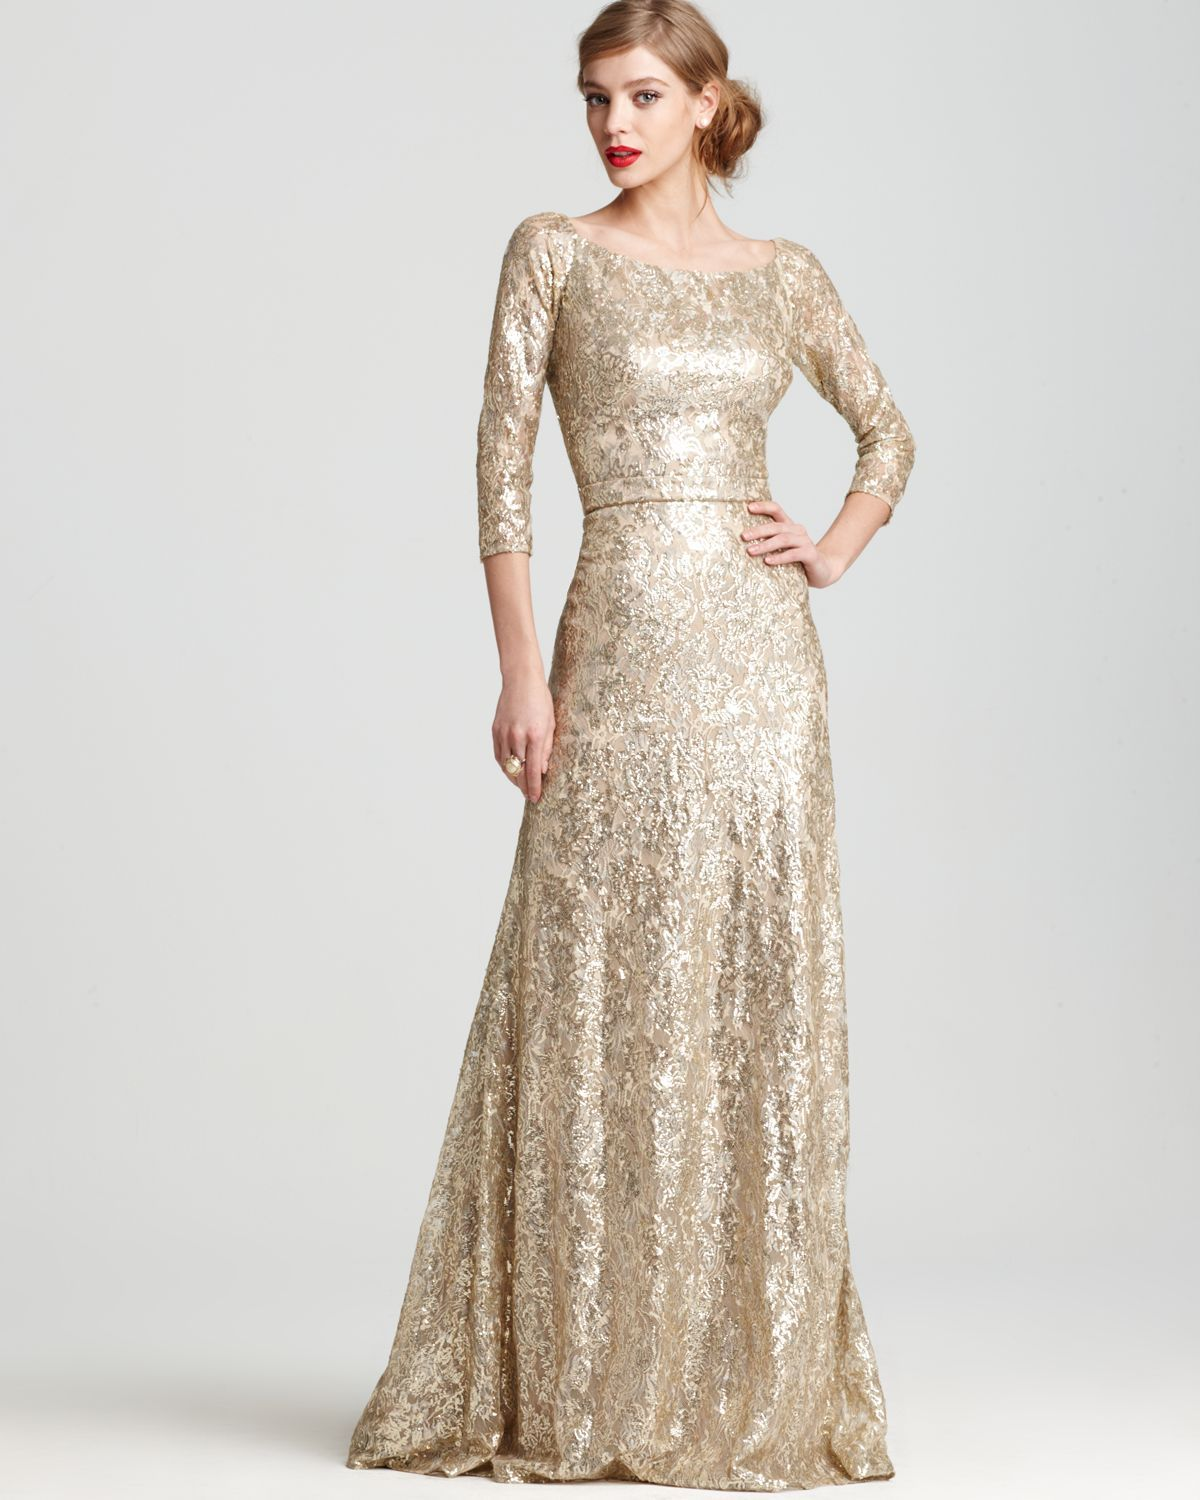 David Meister Gown Three Quarter Sleeve Sequin Bloomingdale S Formal Dresses Gowns Formal Dresses With Sleeves Gowns Dresses [ 1500 x 1200 Pixel ]